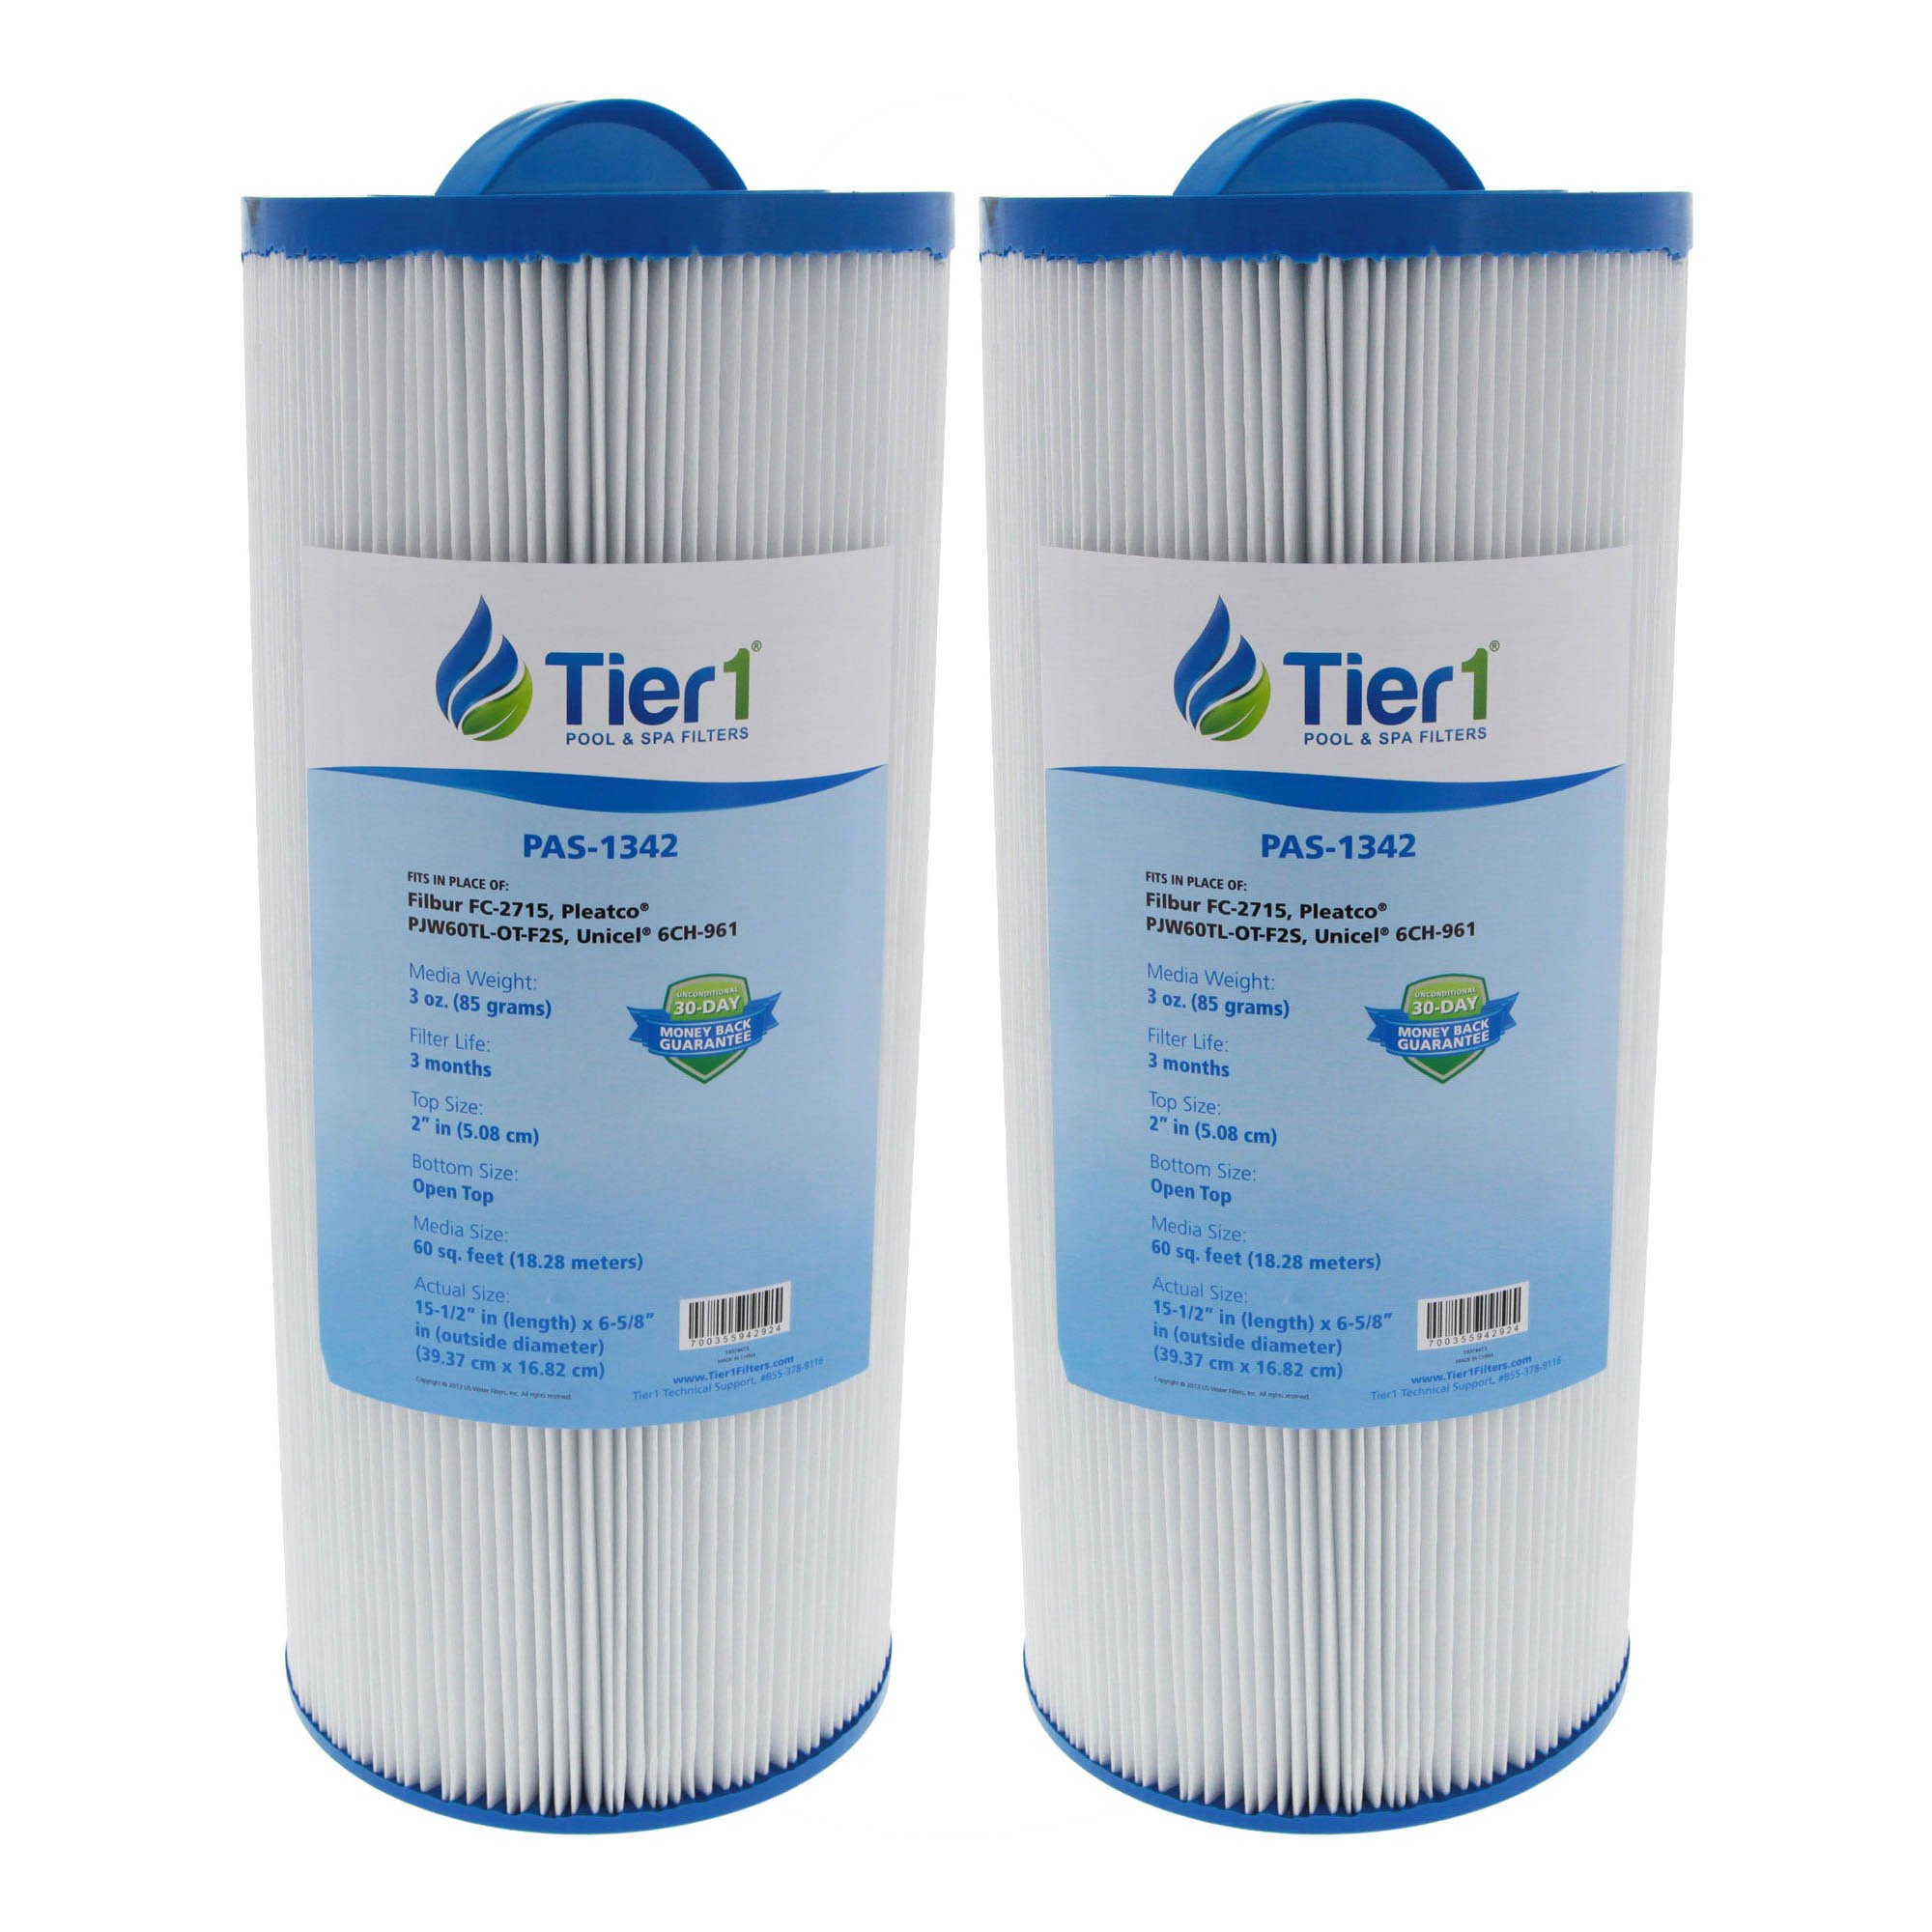 Tier1 Jacuzzi J300 6541-383, Pleatco PJW60TL-OT-F2S, Filbur FC-2715, Unicel 6CH-961 Comparable Replacement Spa Filter for J300 Series Jacuzzi's (2 Pack)